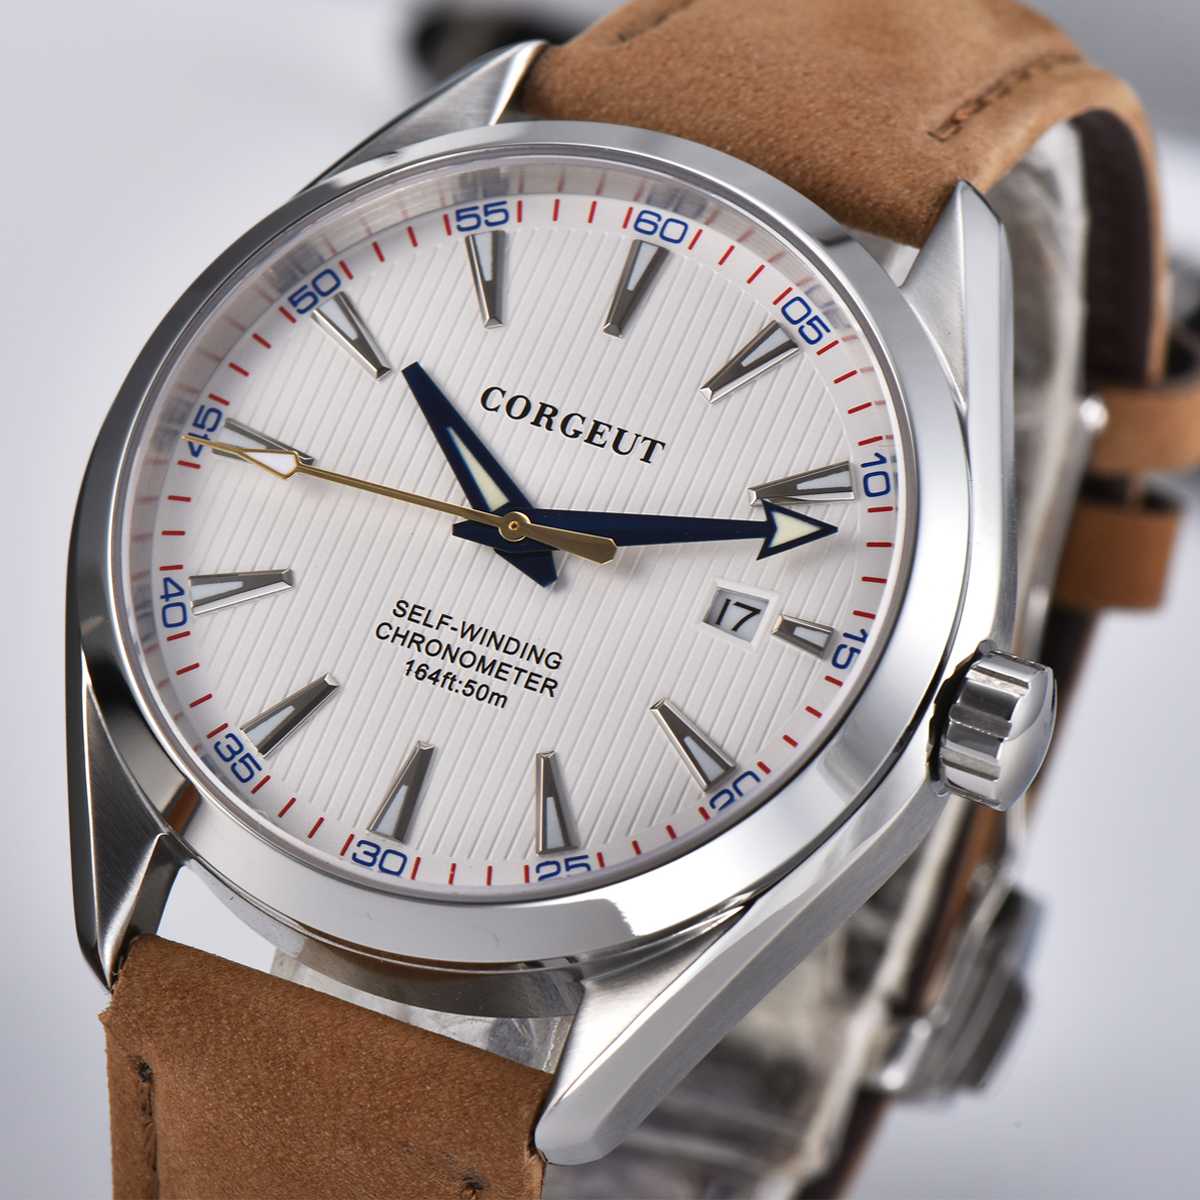 41mm White Dial Date Calendar Automatic